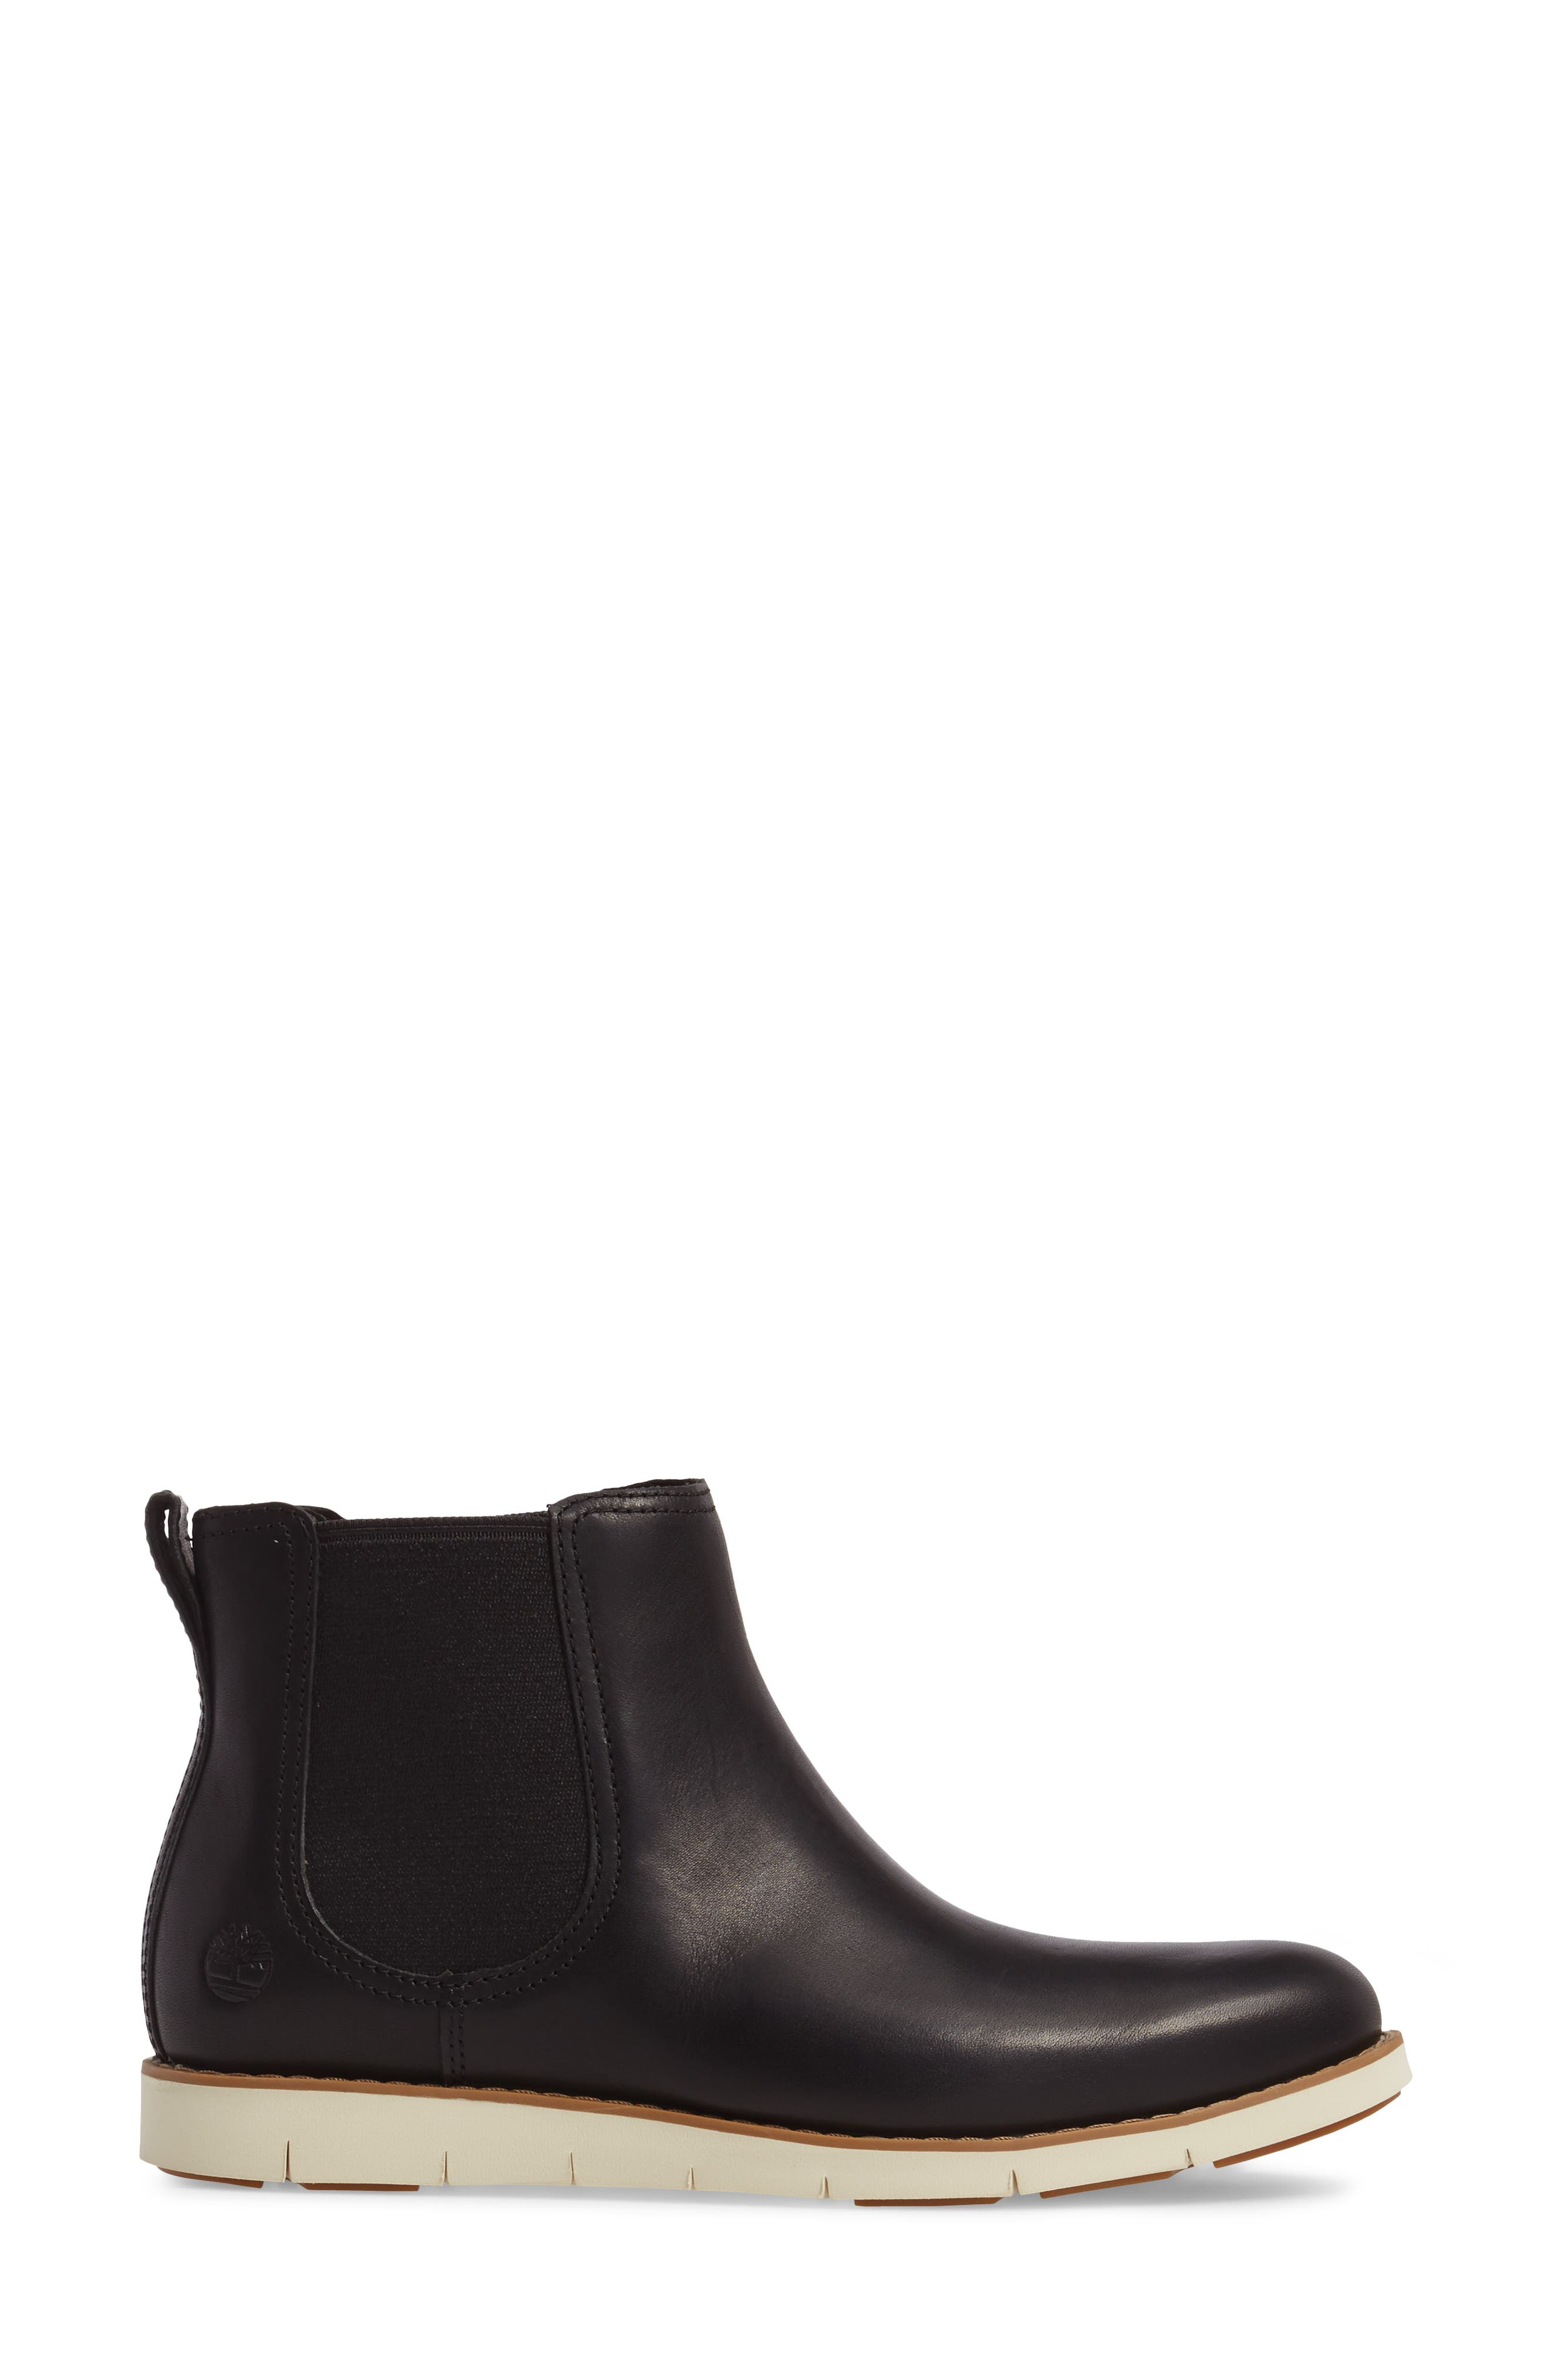 Alternate Image 3  - Timberland Lakeville Chelsea Boot (Women)